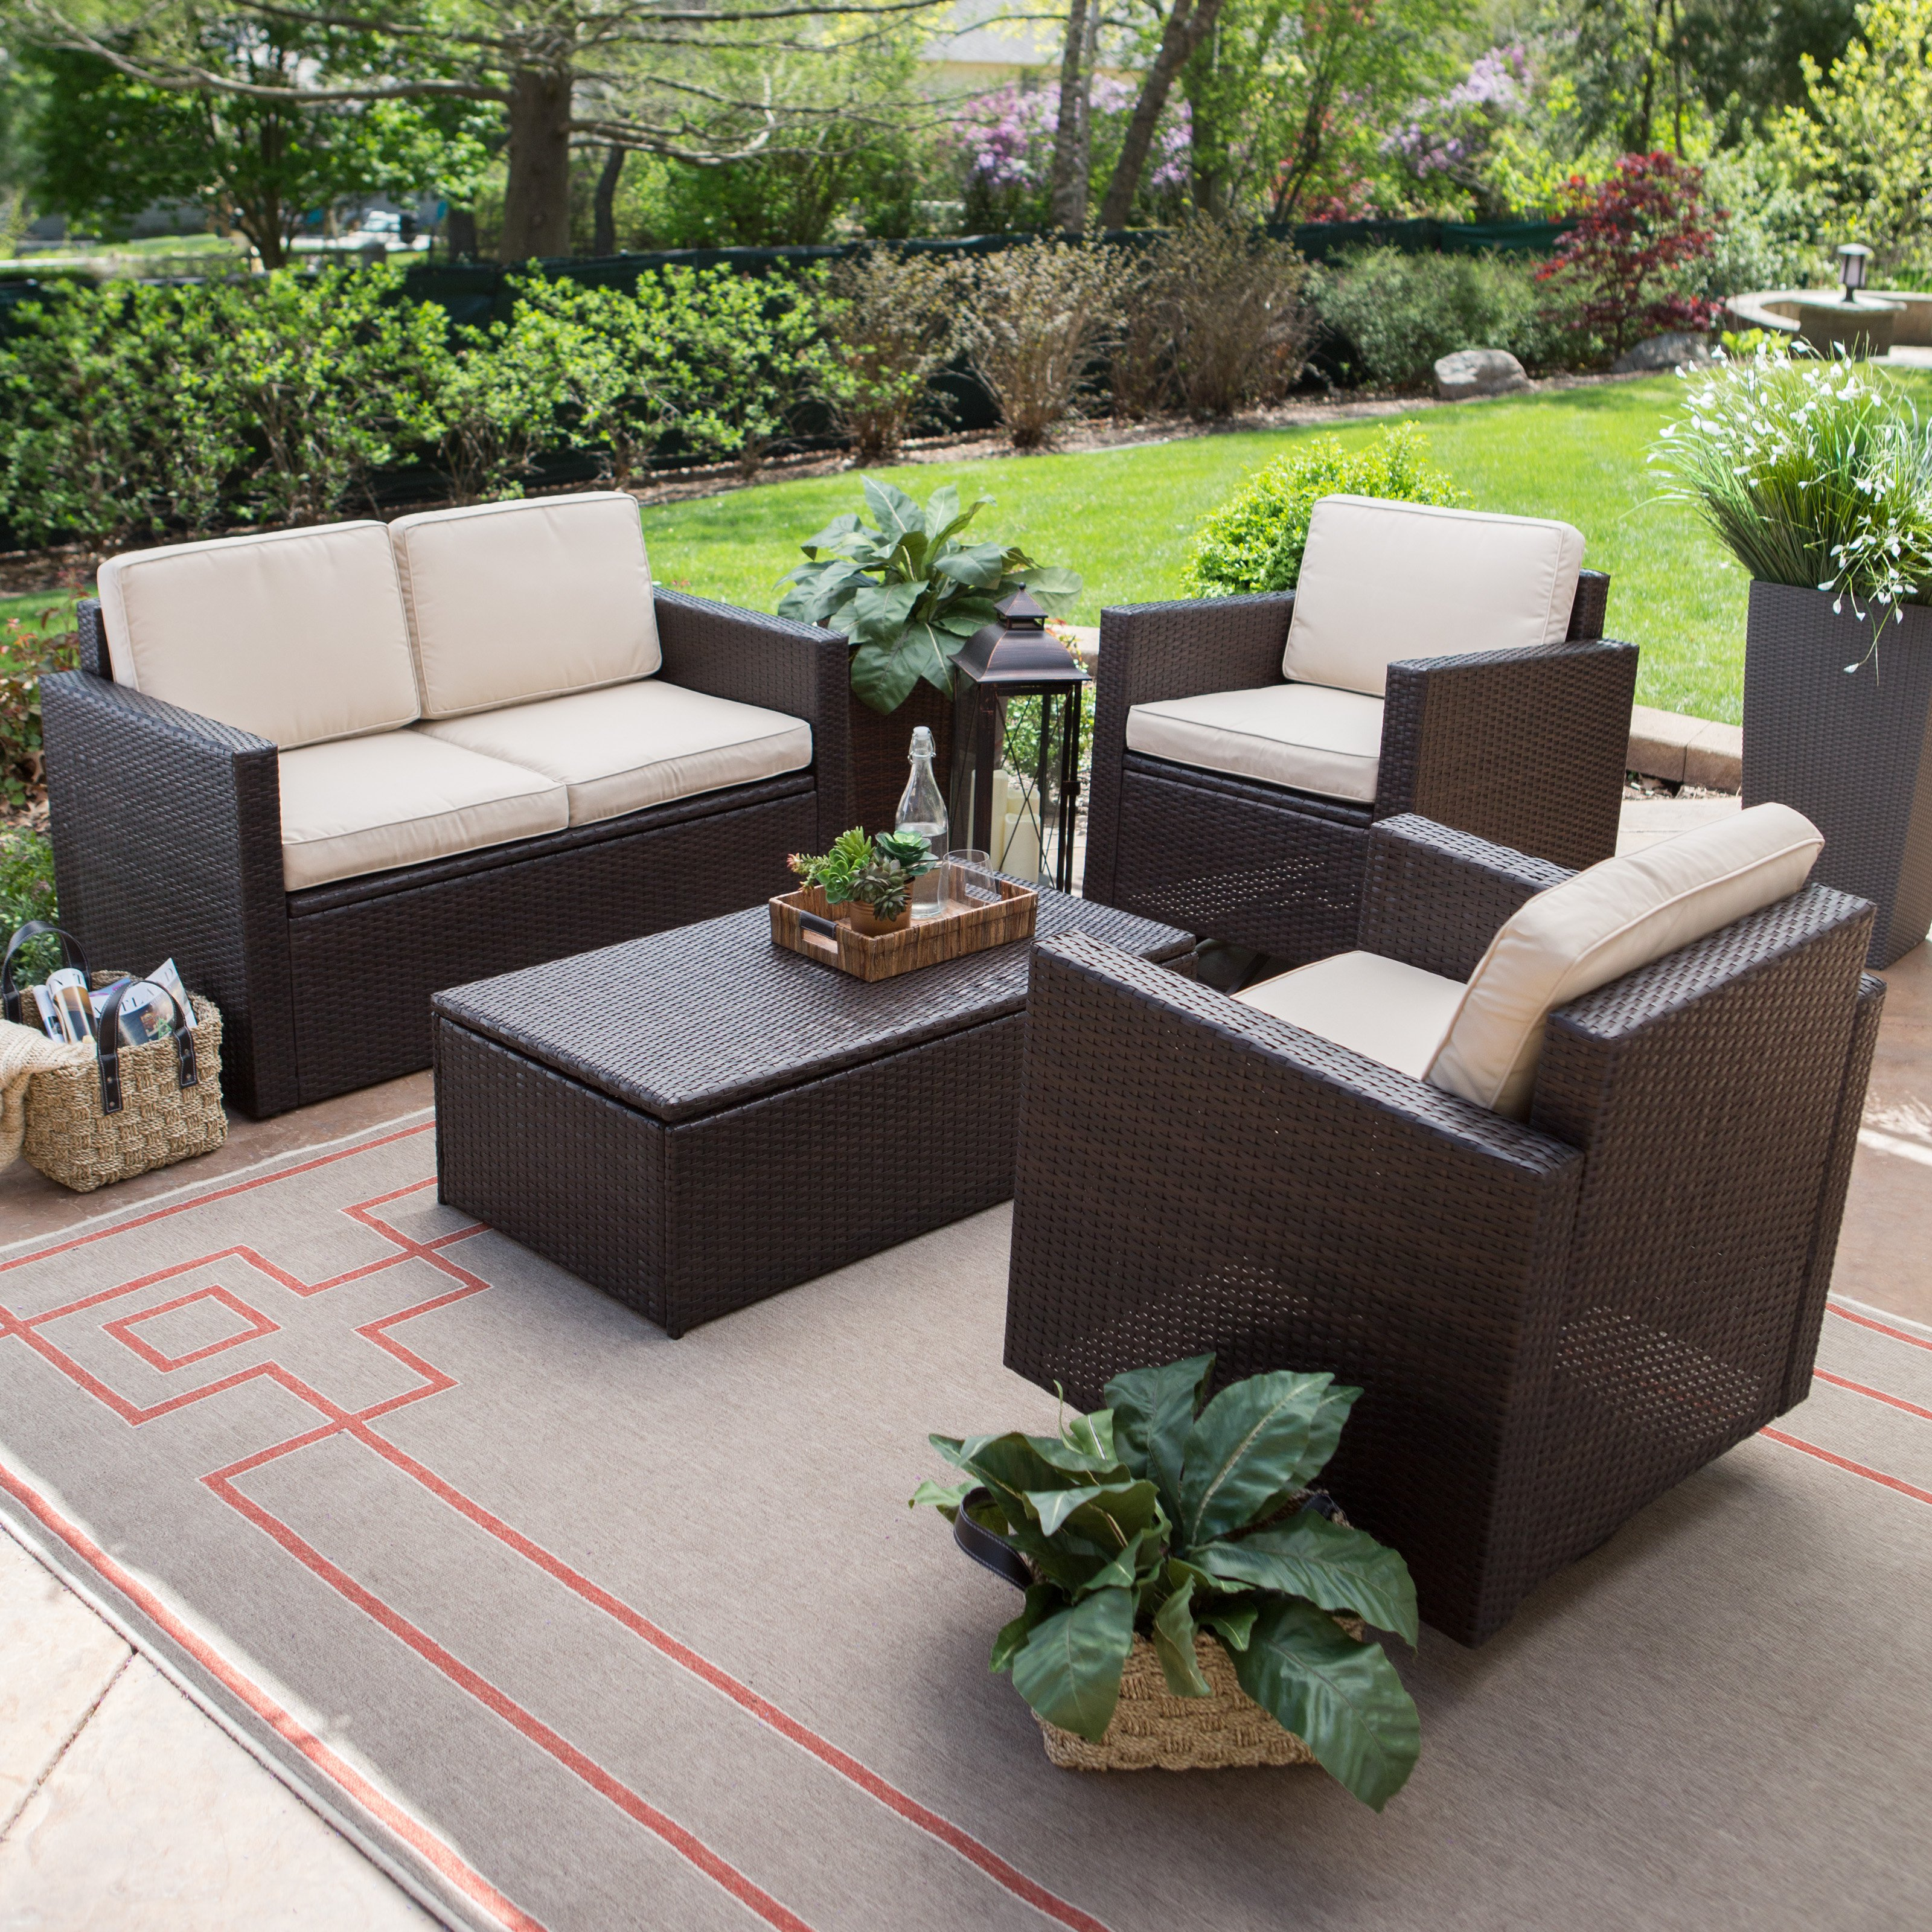 coral coast berea wicker piece conversation set with storage master accent patio table collapsible trestle under couch rustic corner black and white modern coffee extra tall